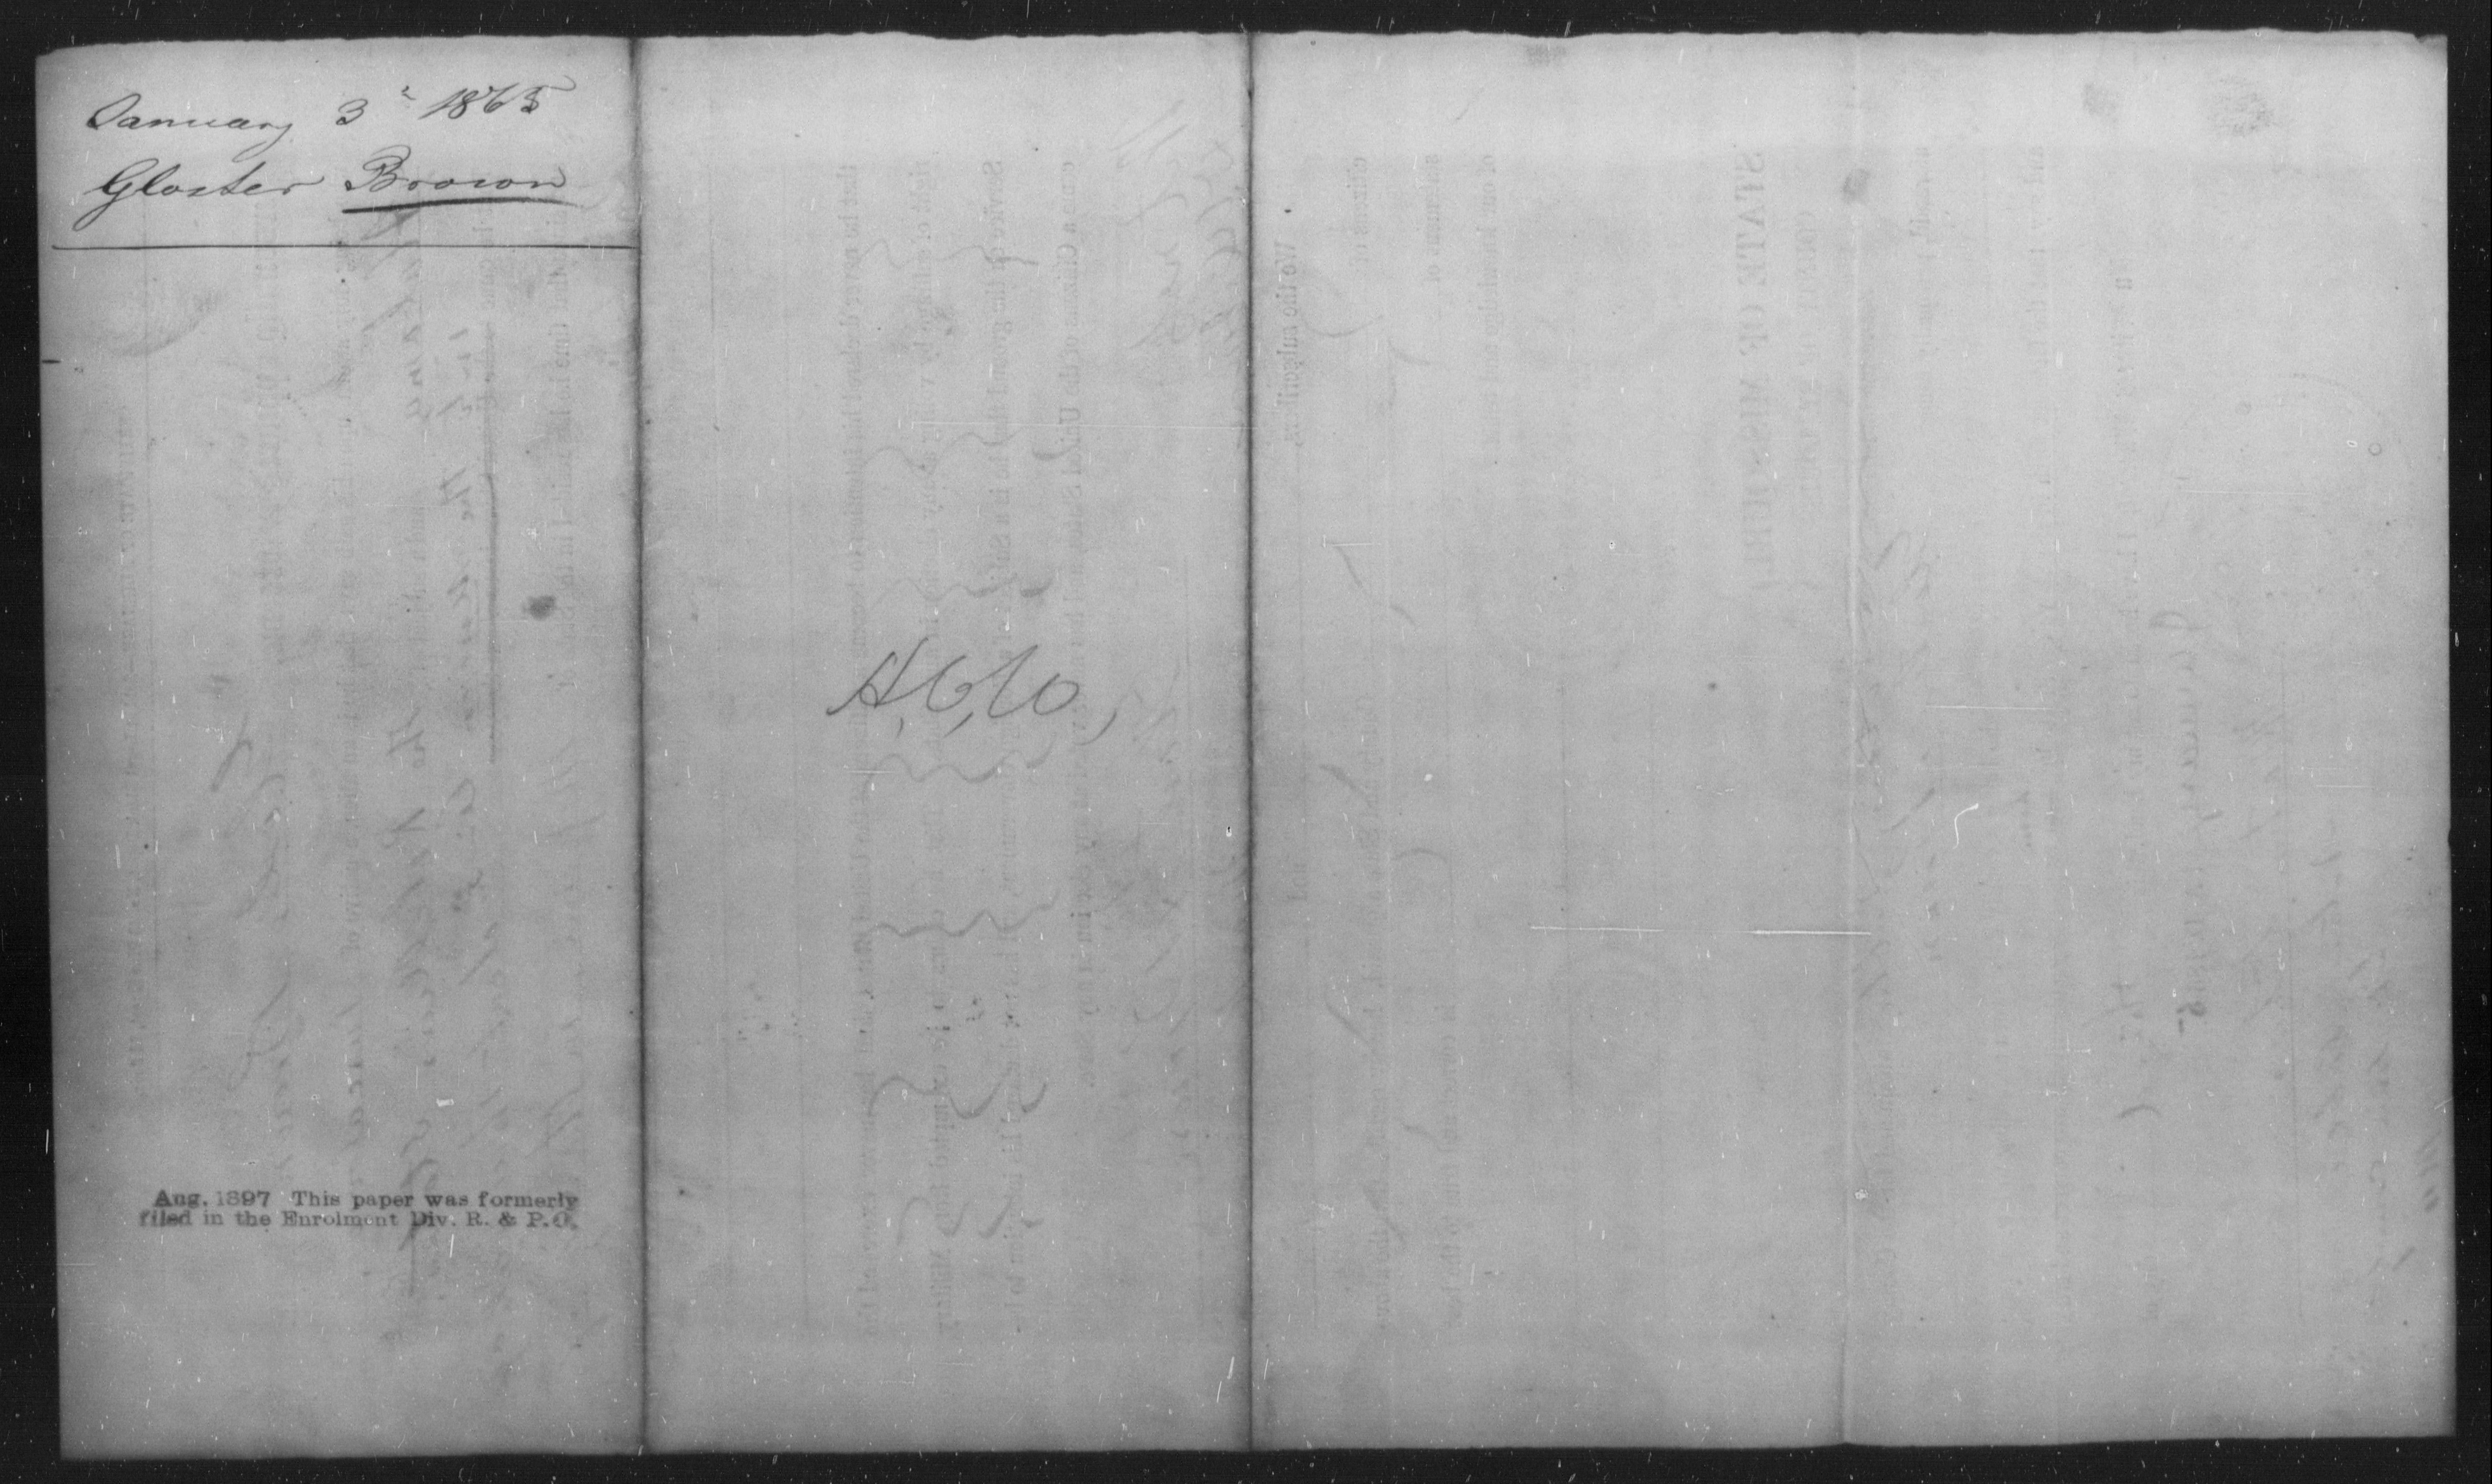 [Missouri] Brown, Gloster - Age 27, Year: 1864 - Personal Papers, Bre-Bry